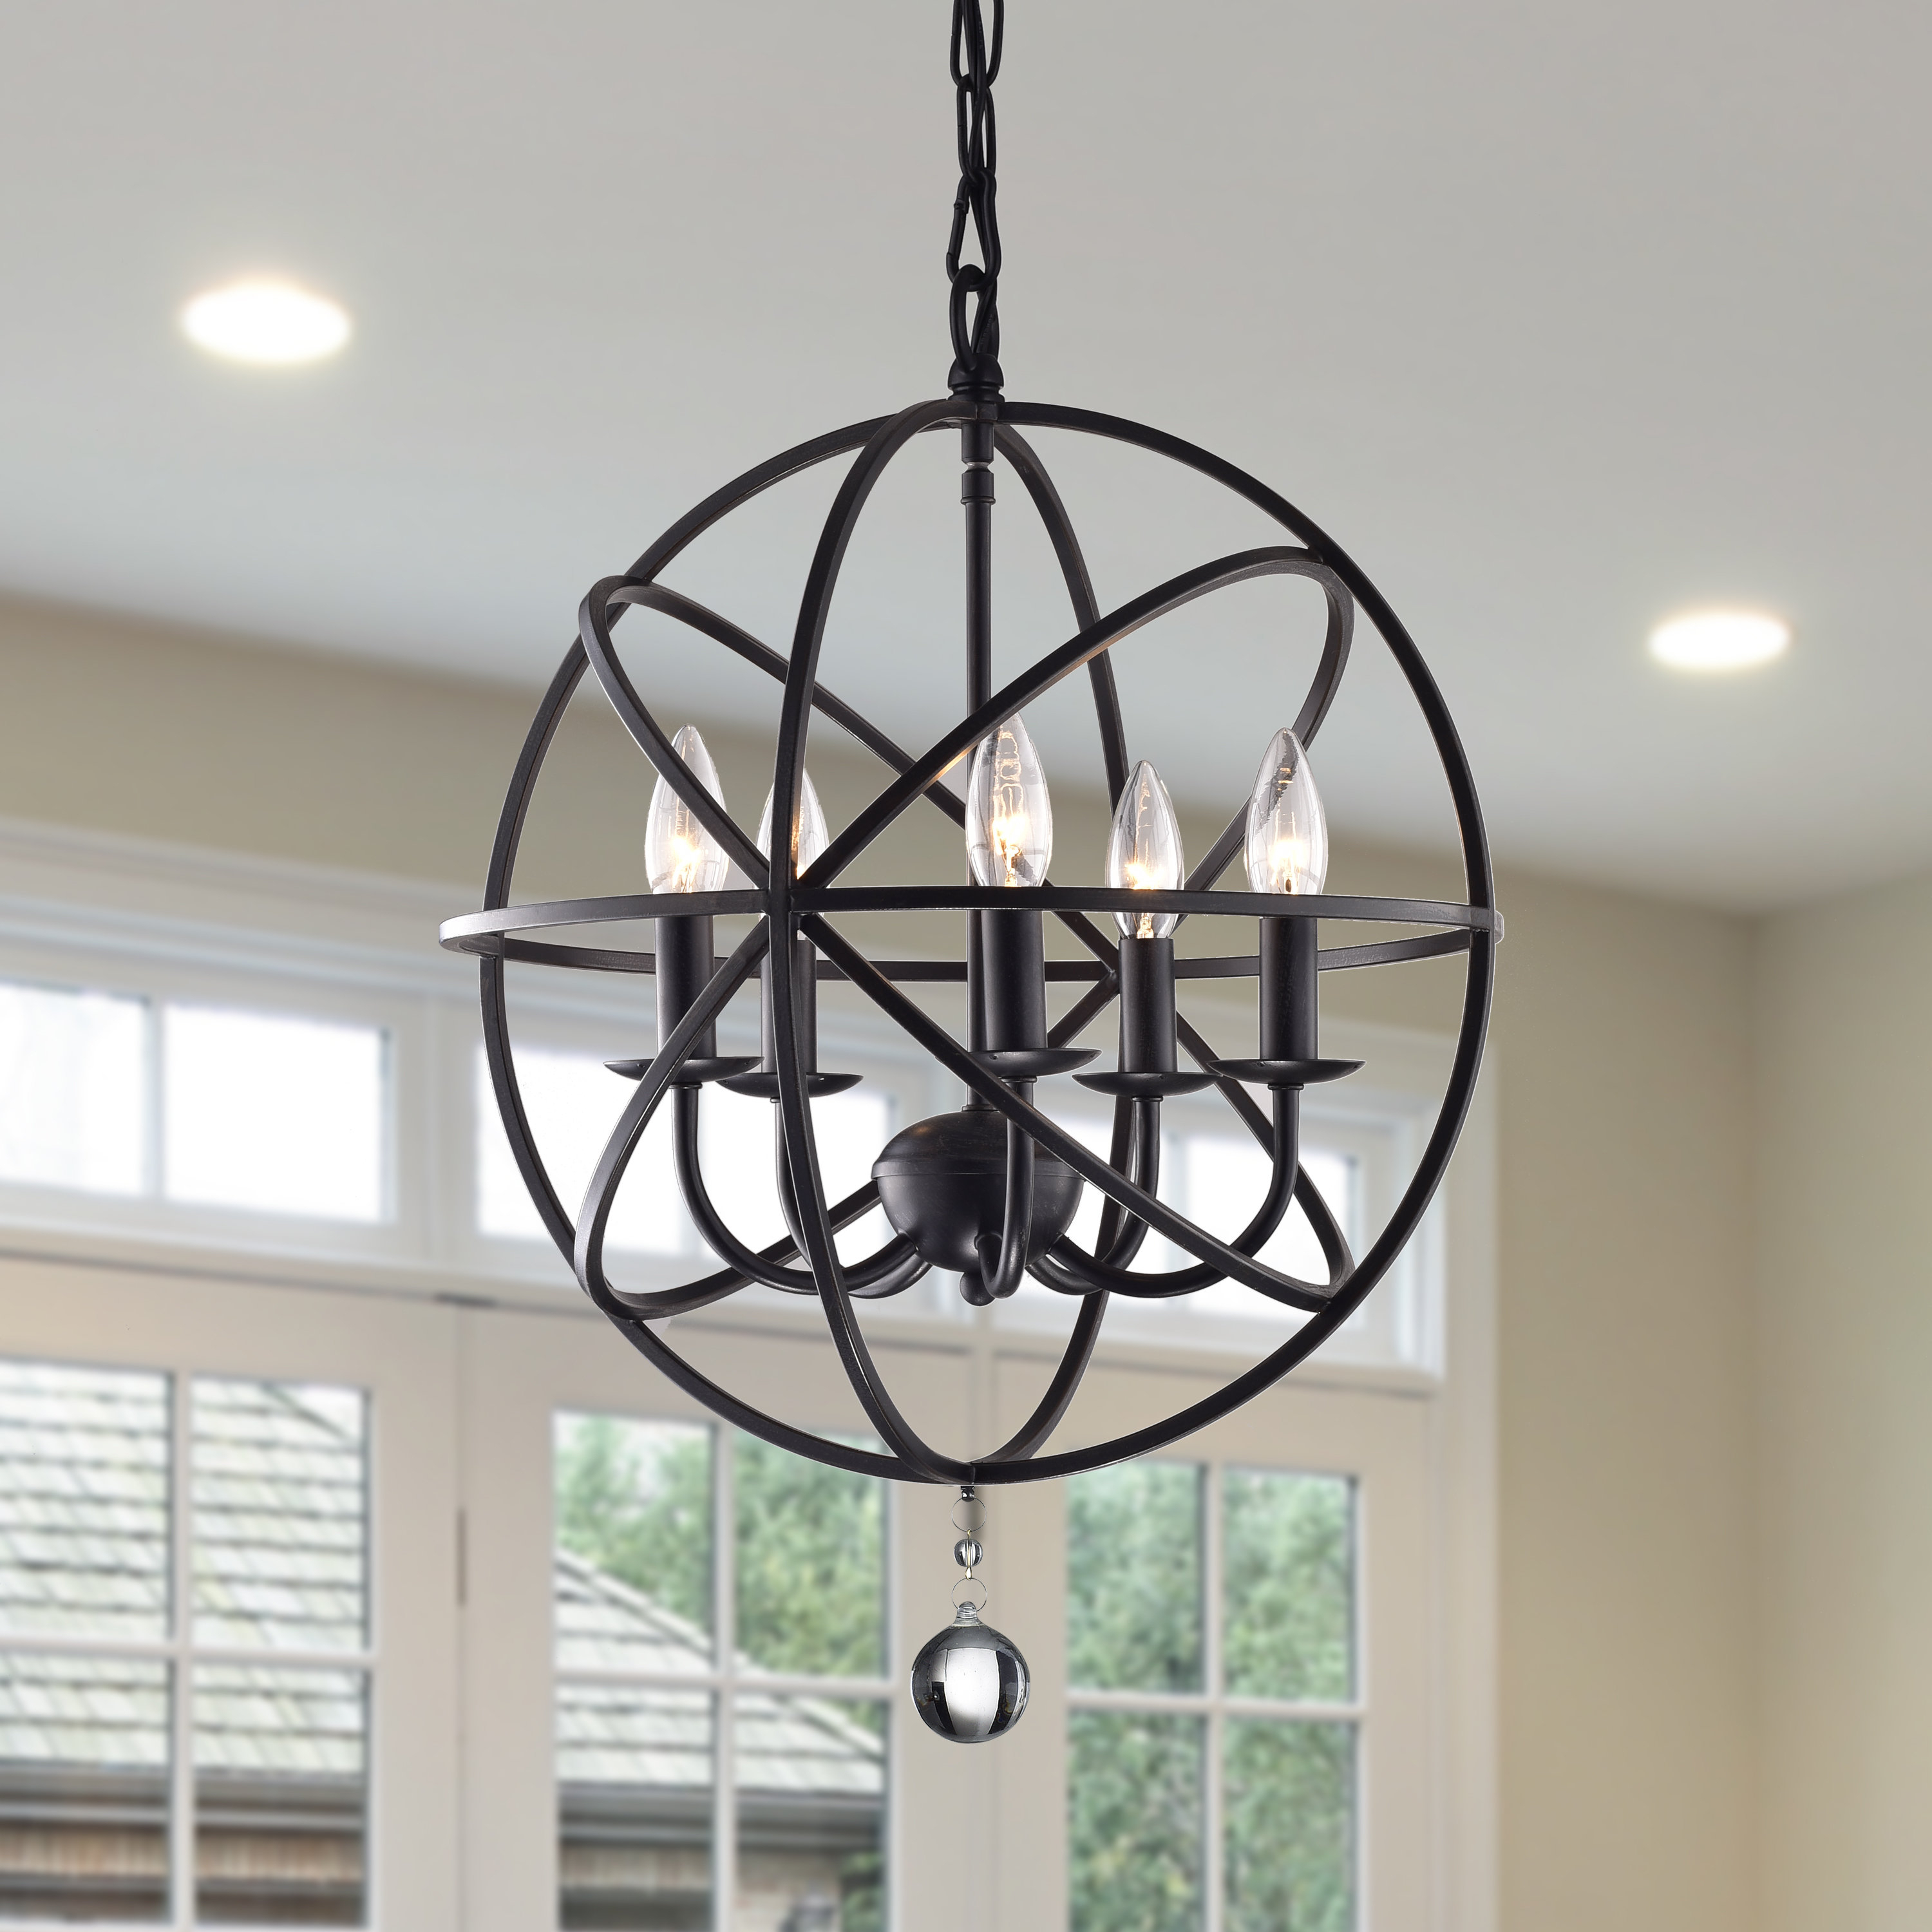 Most Recent Shipststour 3 Light Globe Chandeliers Intended For Verlene Foyer 5 Light Globe Chandelier & Reviews (View 14 of 25)